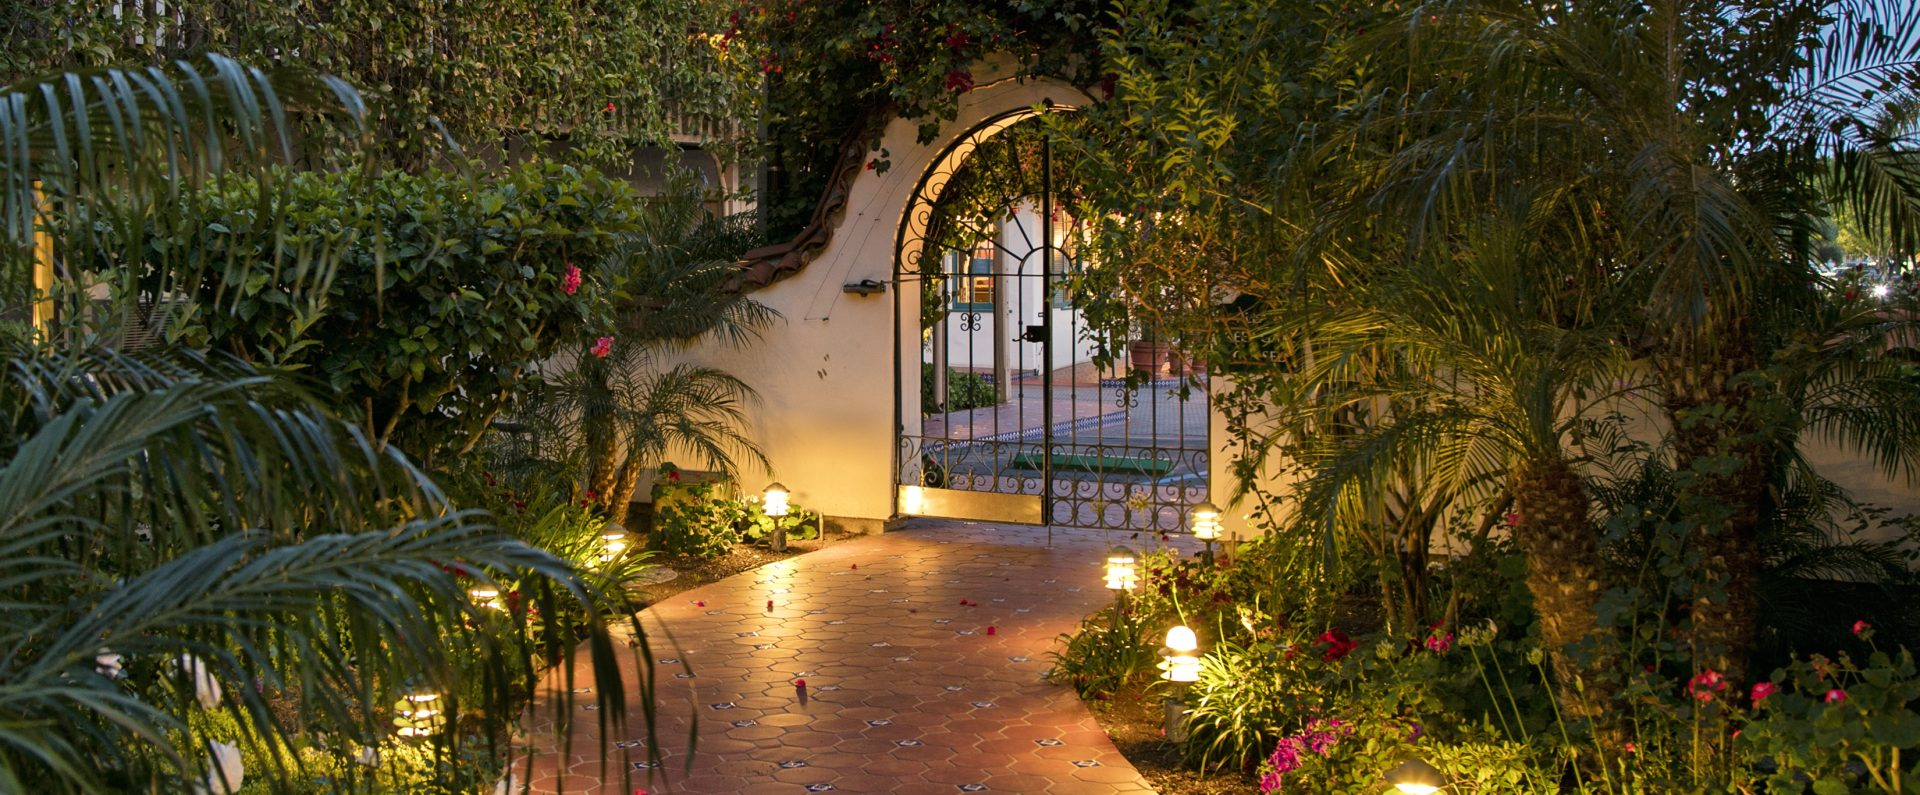 Garden Walkway Best Western Plus Pepper Tree Inn